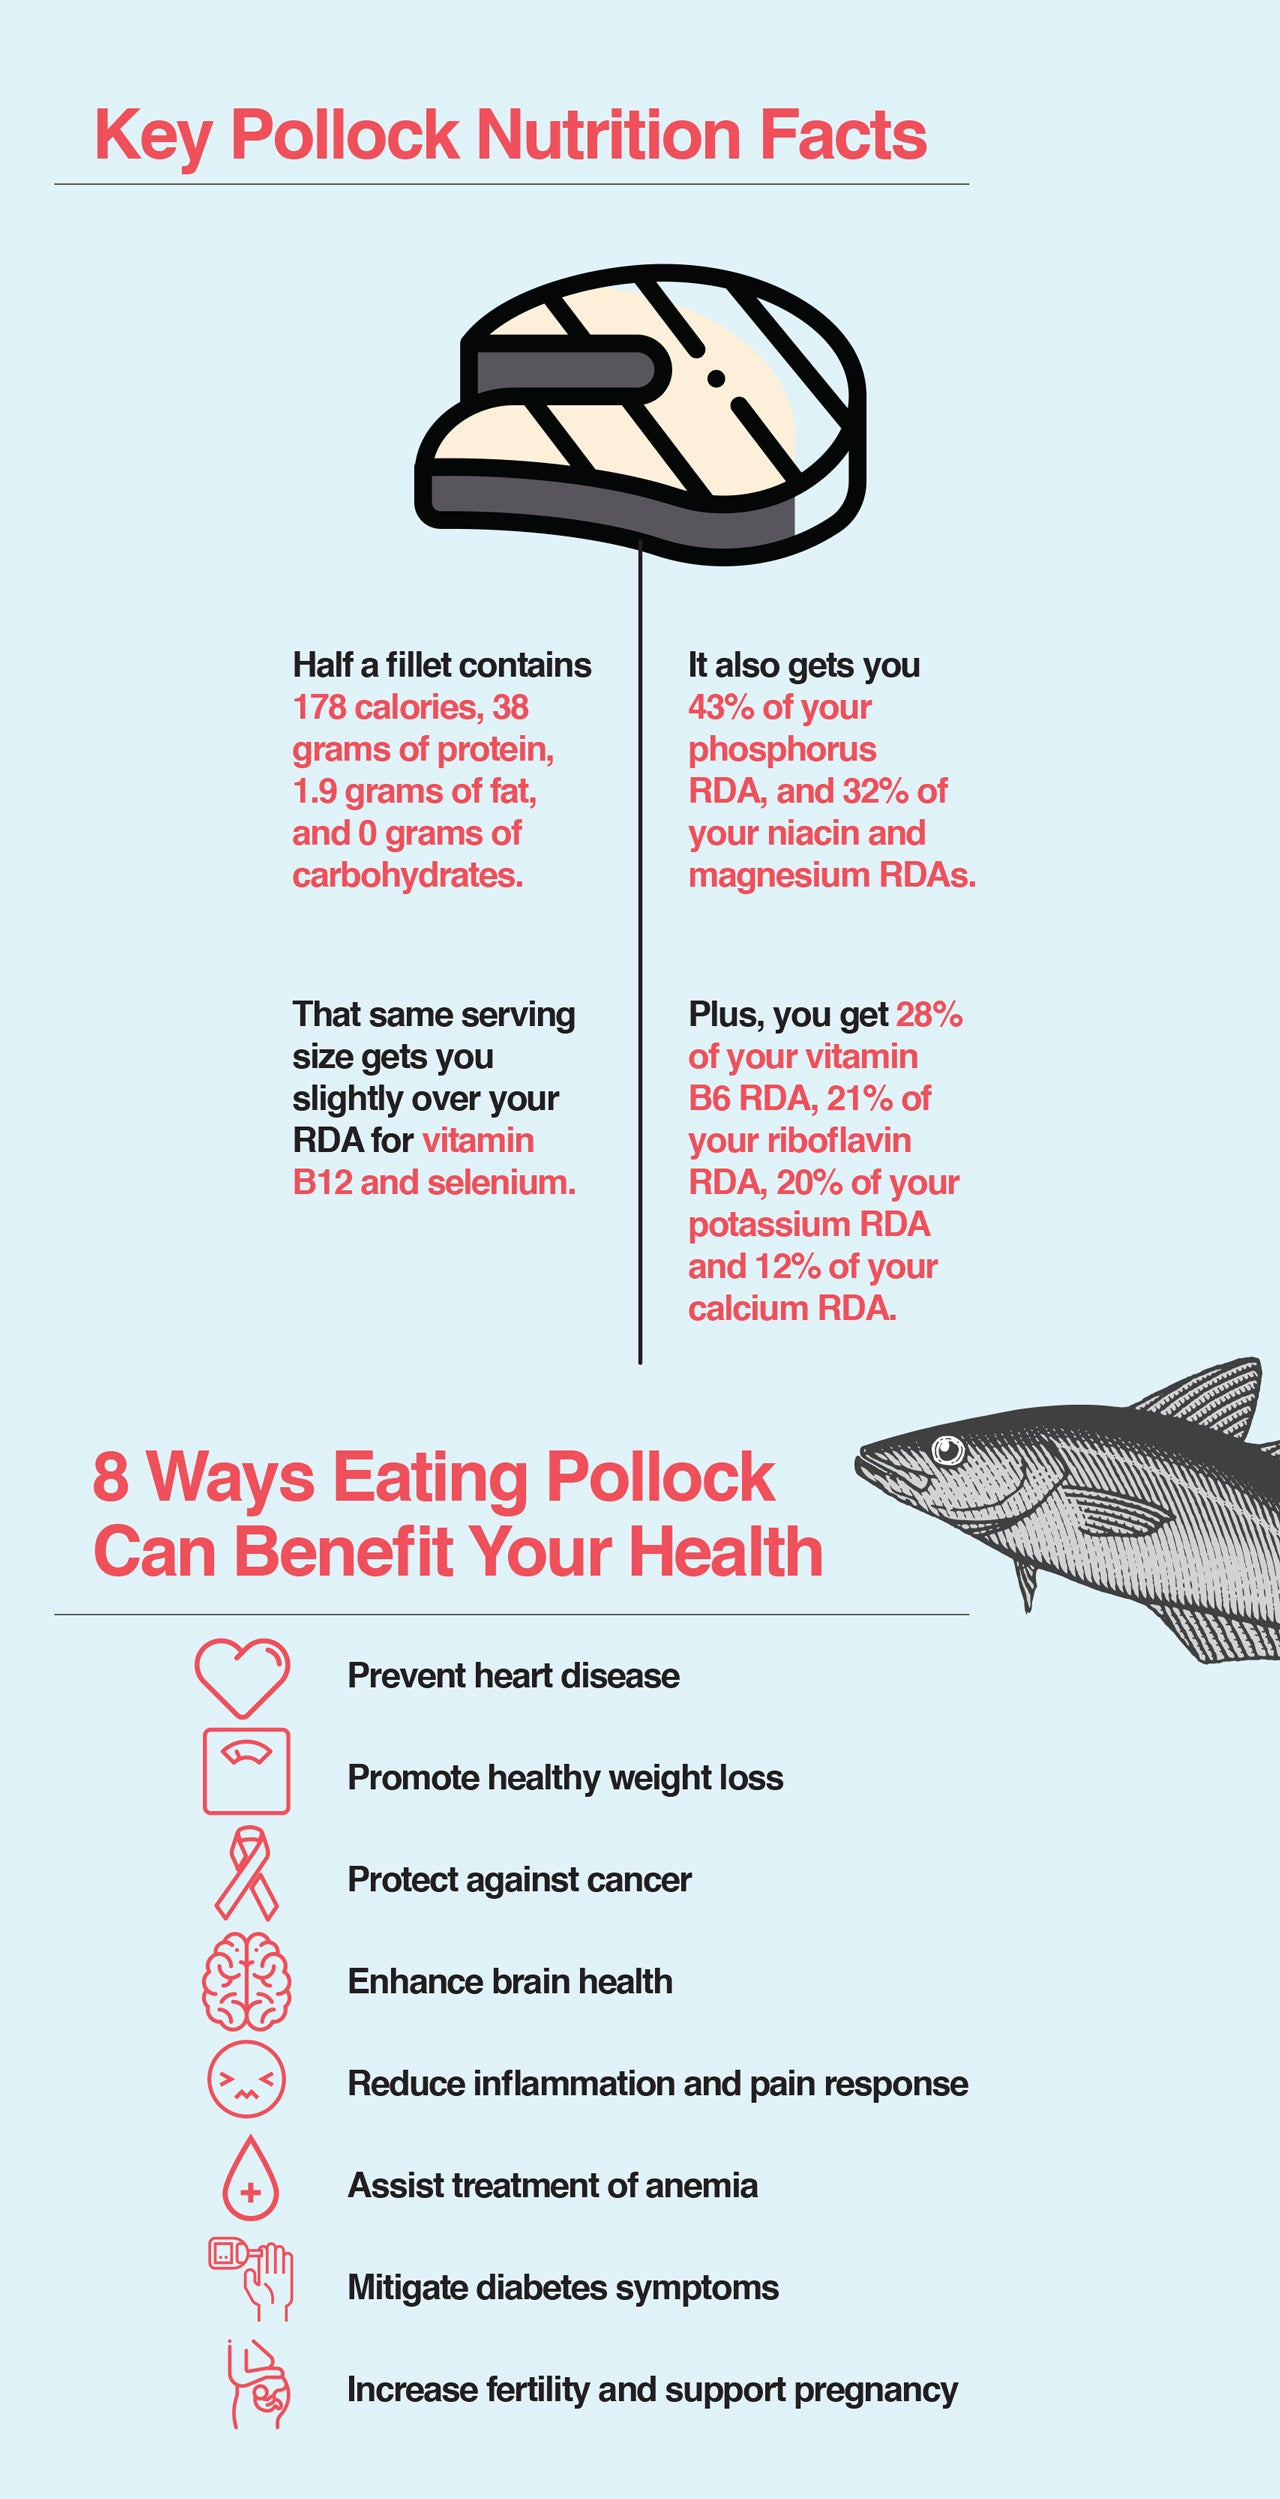 Here are the nutritional facts and health benefits for Pollock.